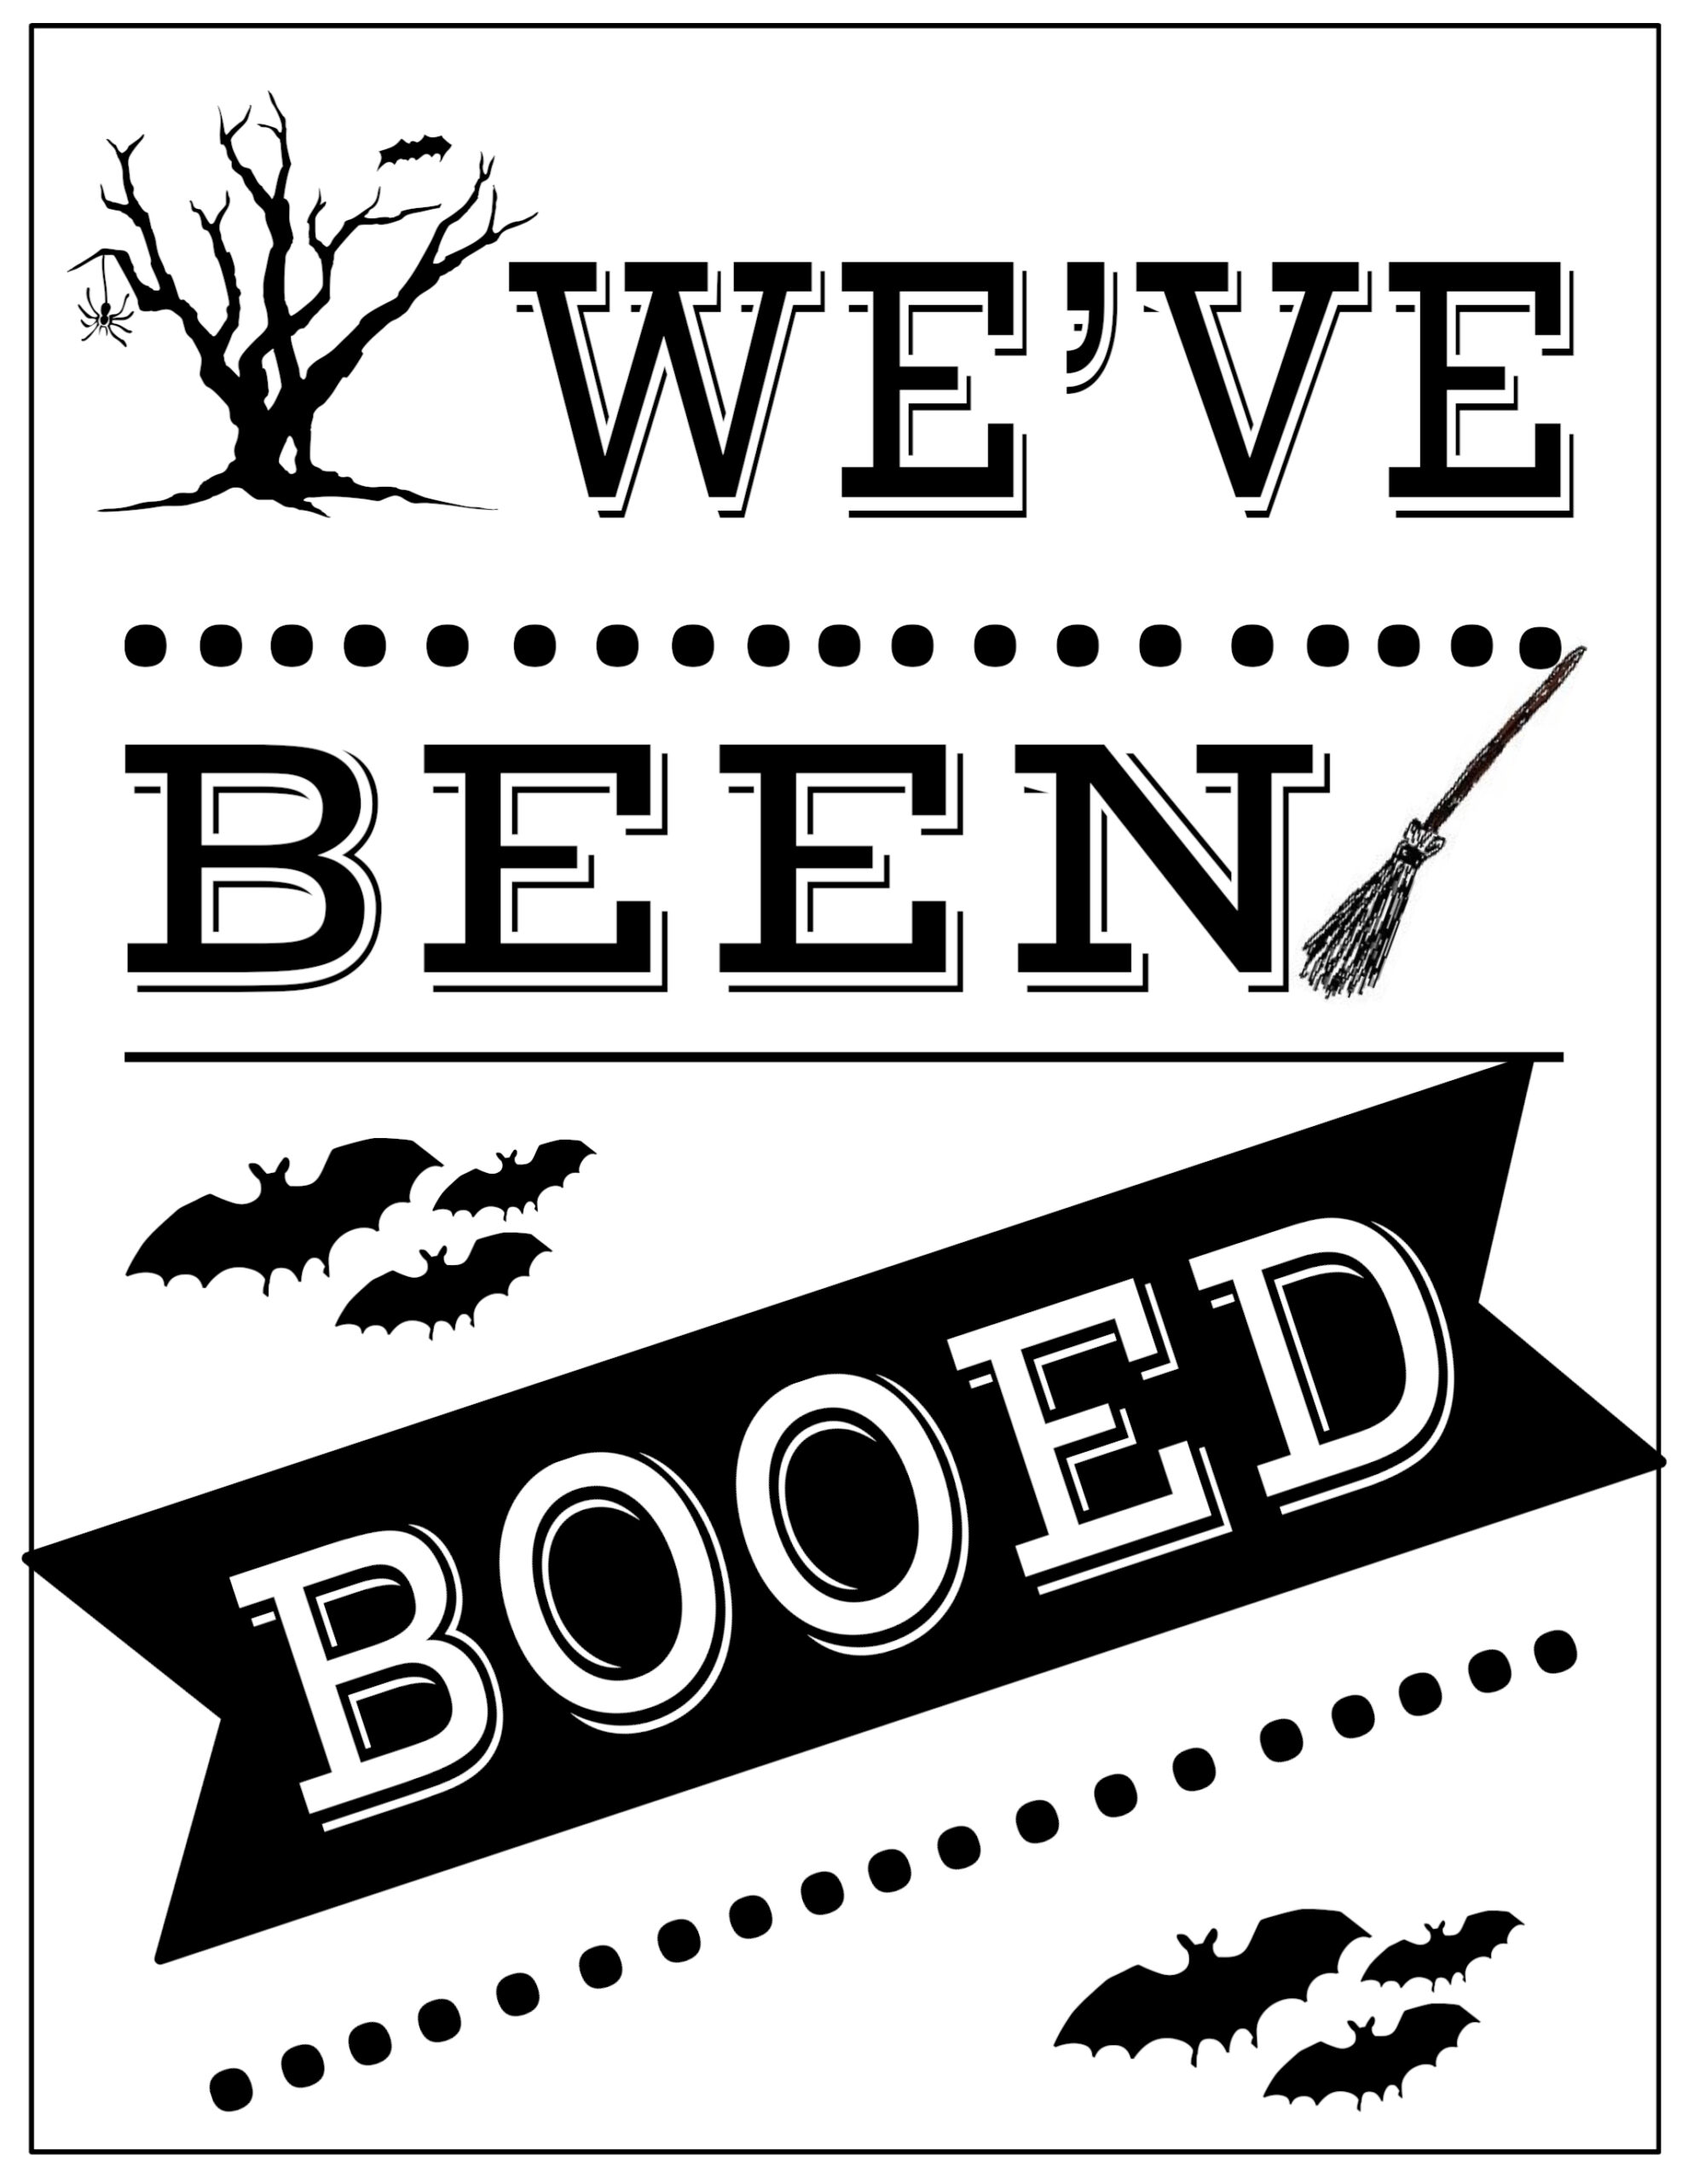 graphic regarding We Ve Been Booed Printable named Youve Been Booed Absolutely free Printable Indications - Paper Path Design and style